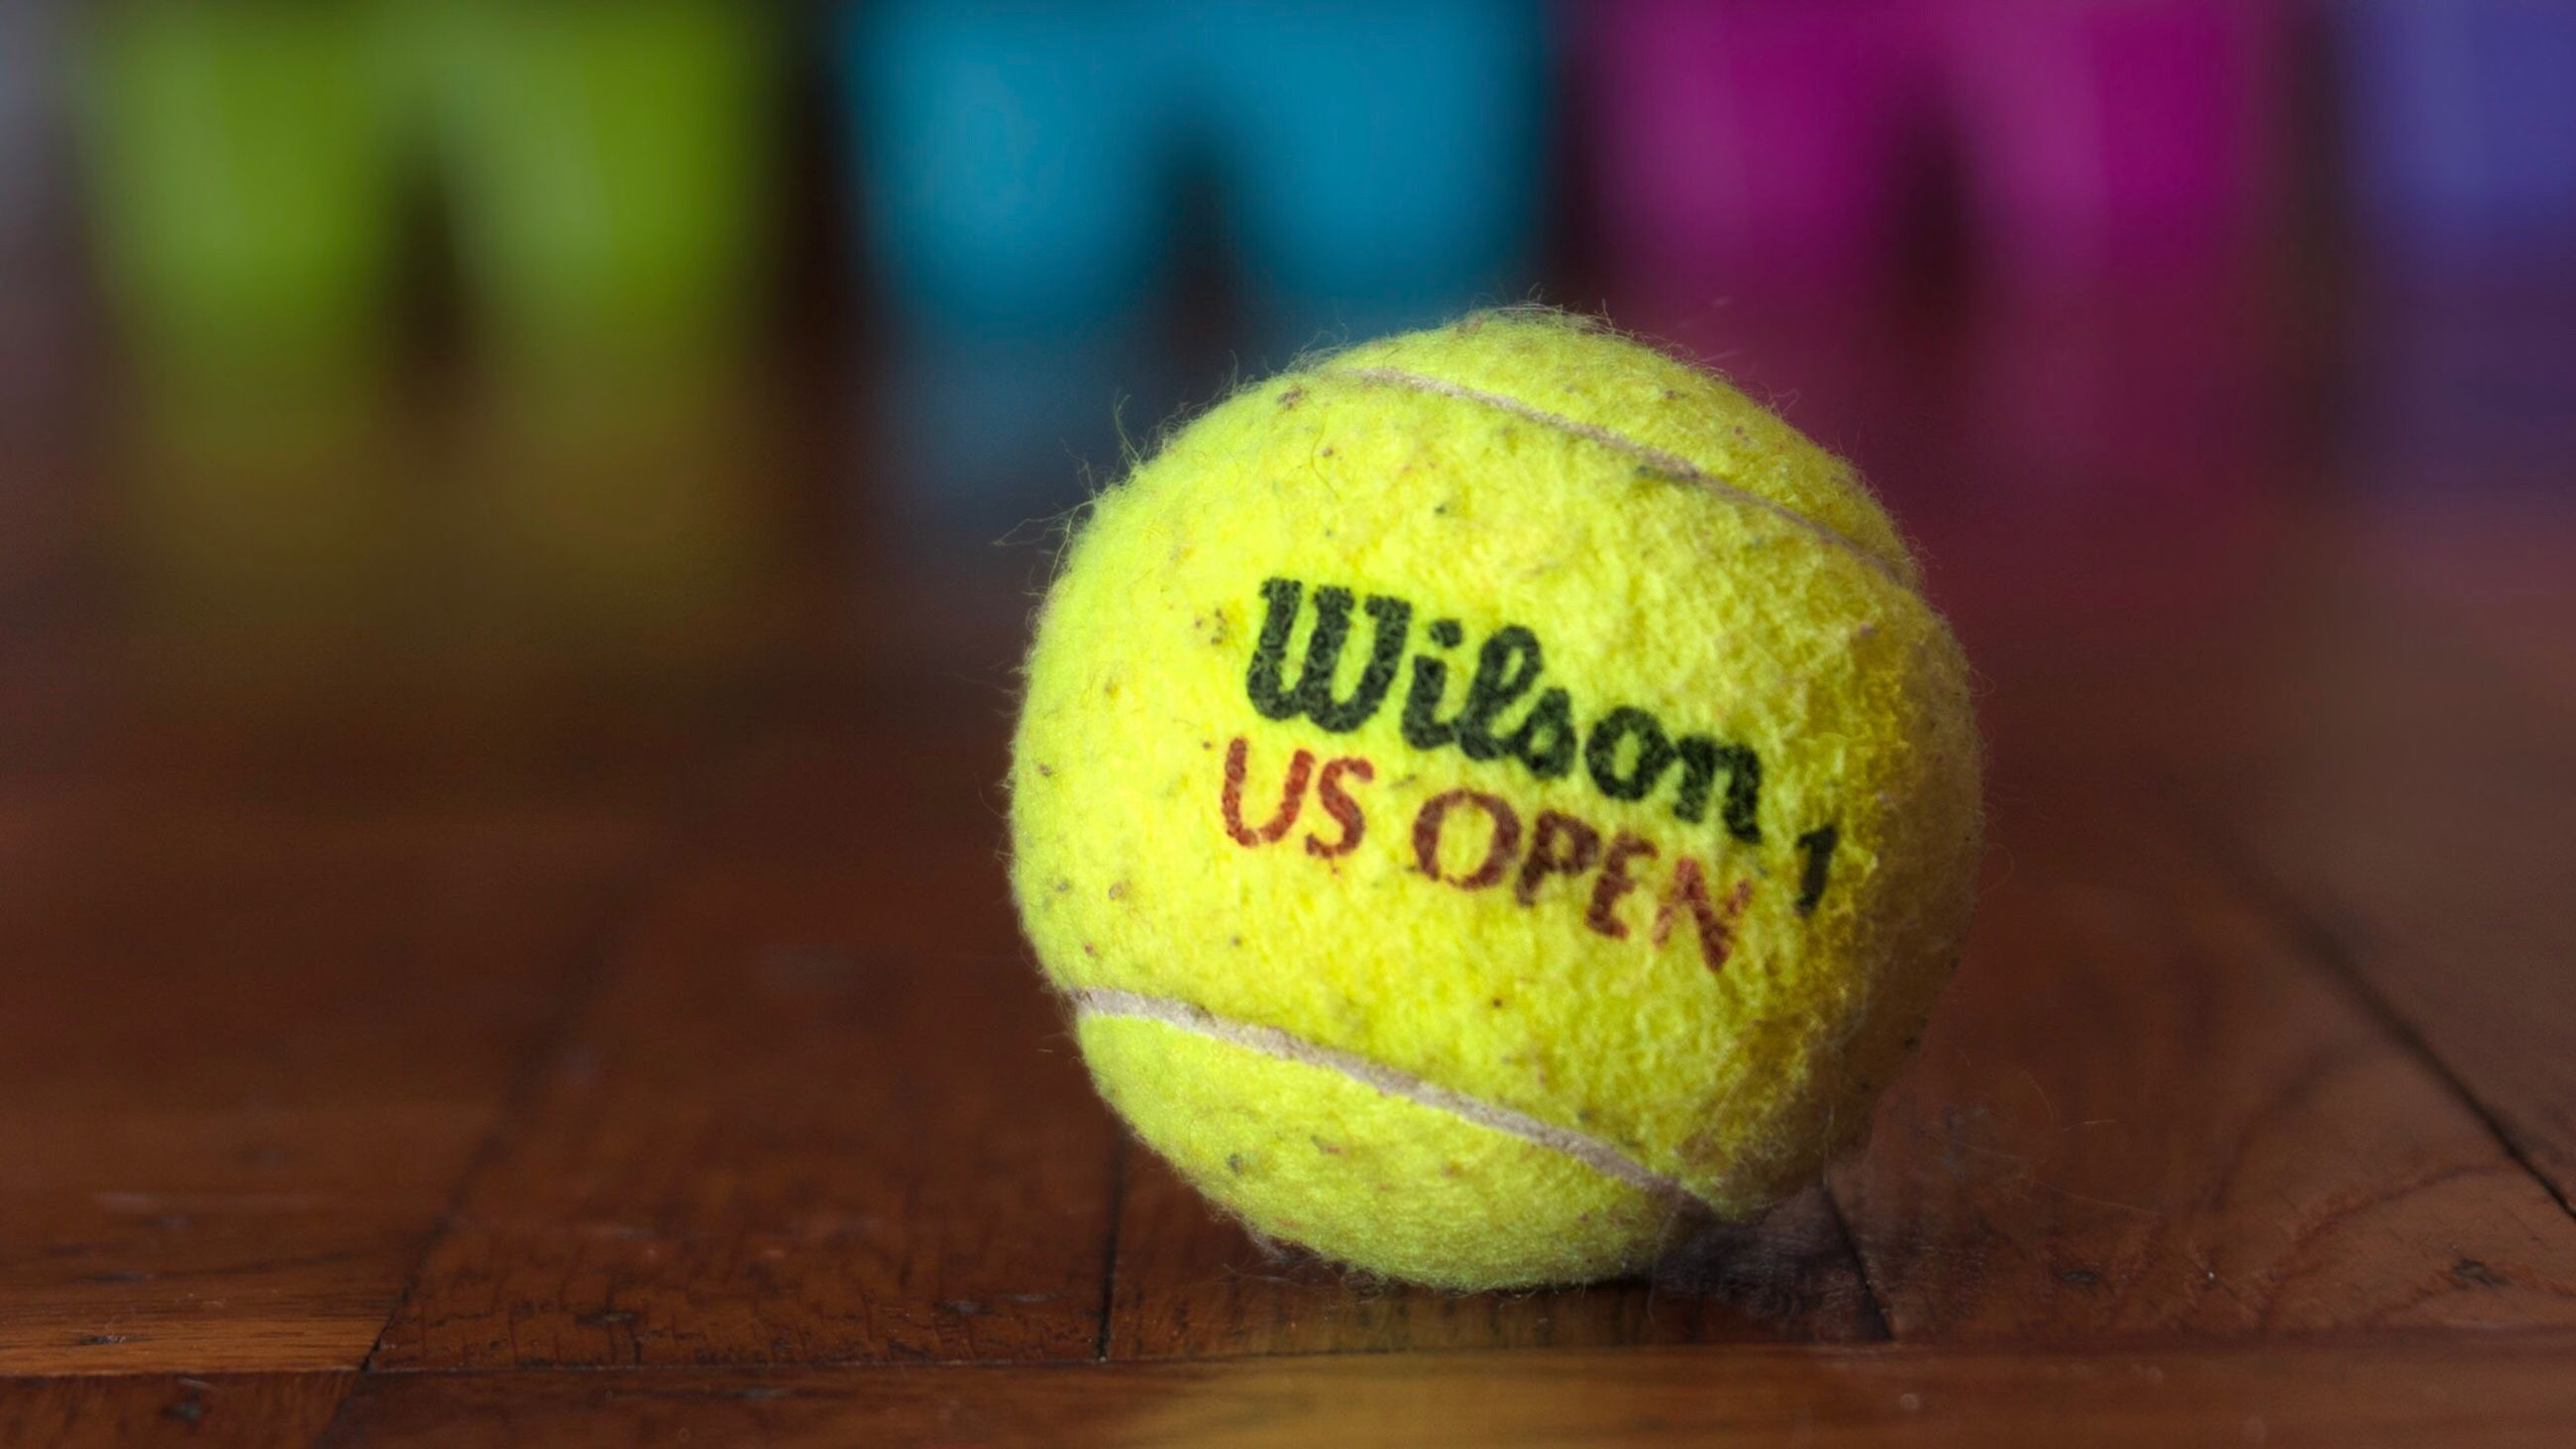 tennis, sport, tennis ball, ball, indoors, no people, focus on foreground, close-up, yellow, court, day